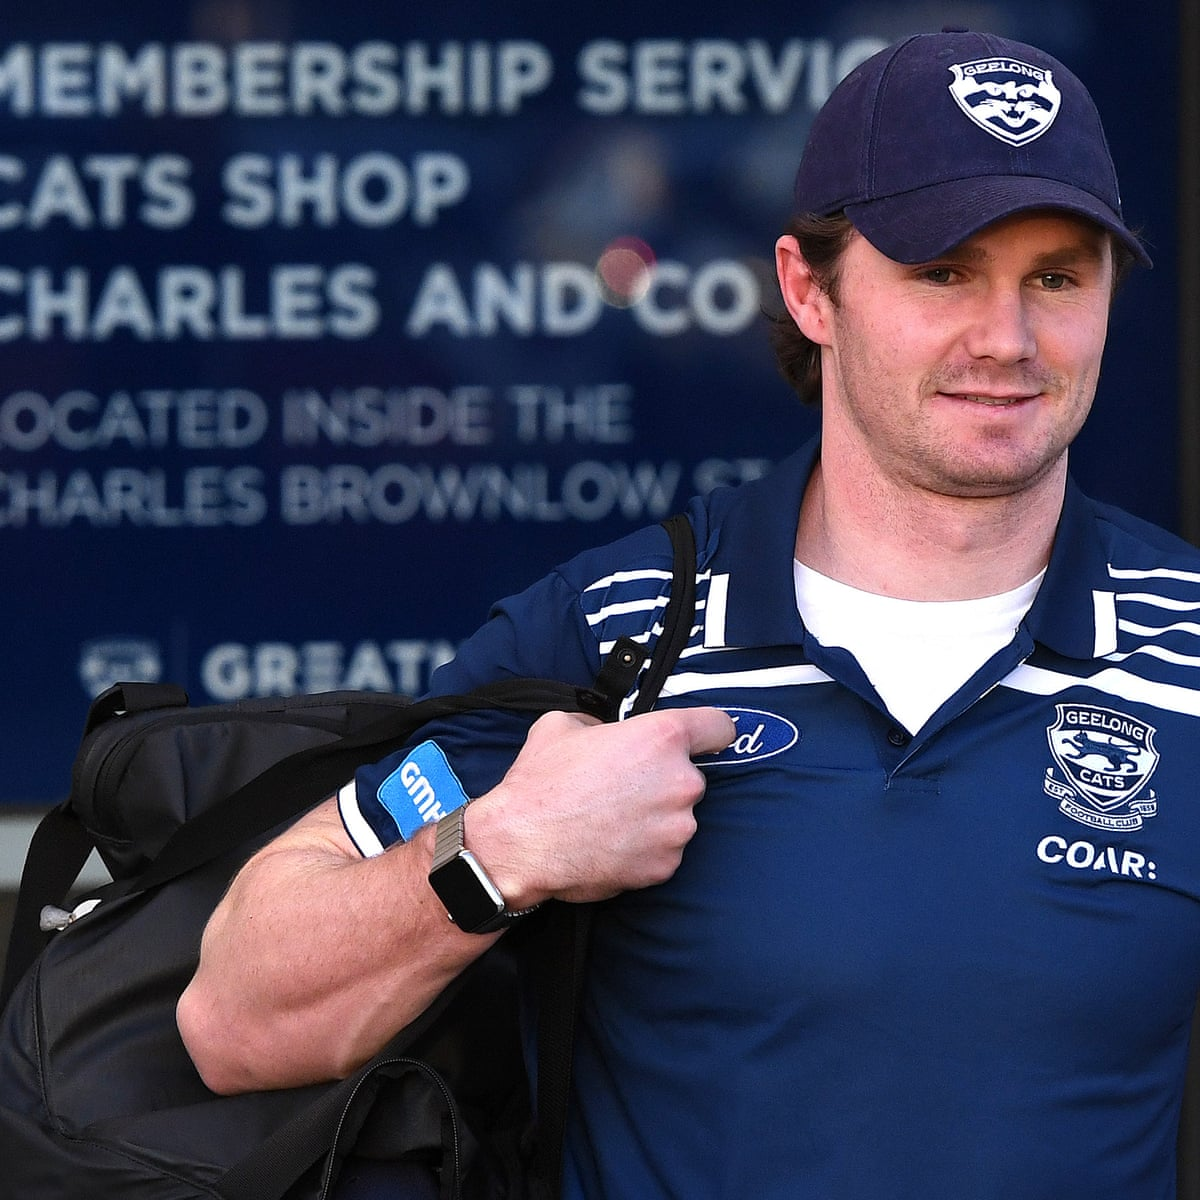 Patrick Dangerfield S Brownlow Medal Hopes Over After He Accepts Afl Ban Sport The Guardian